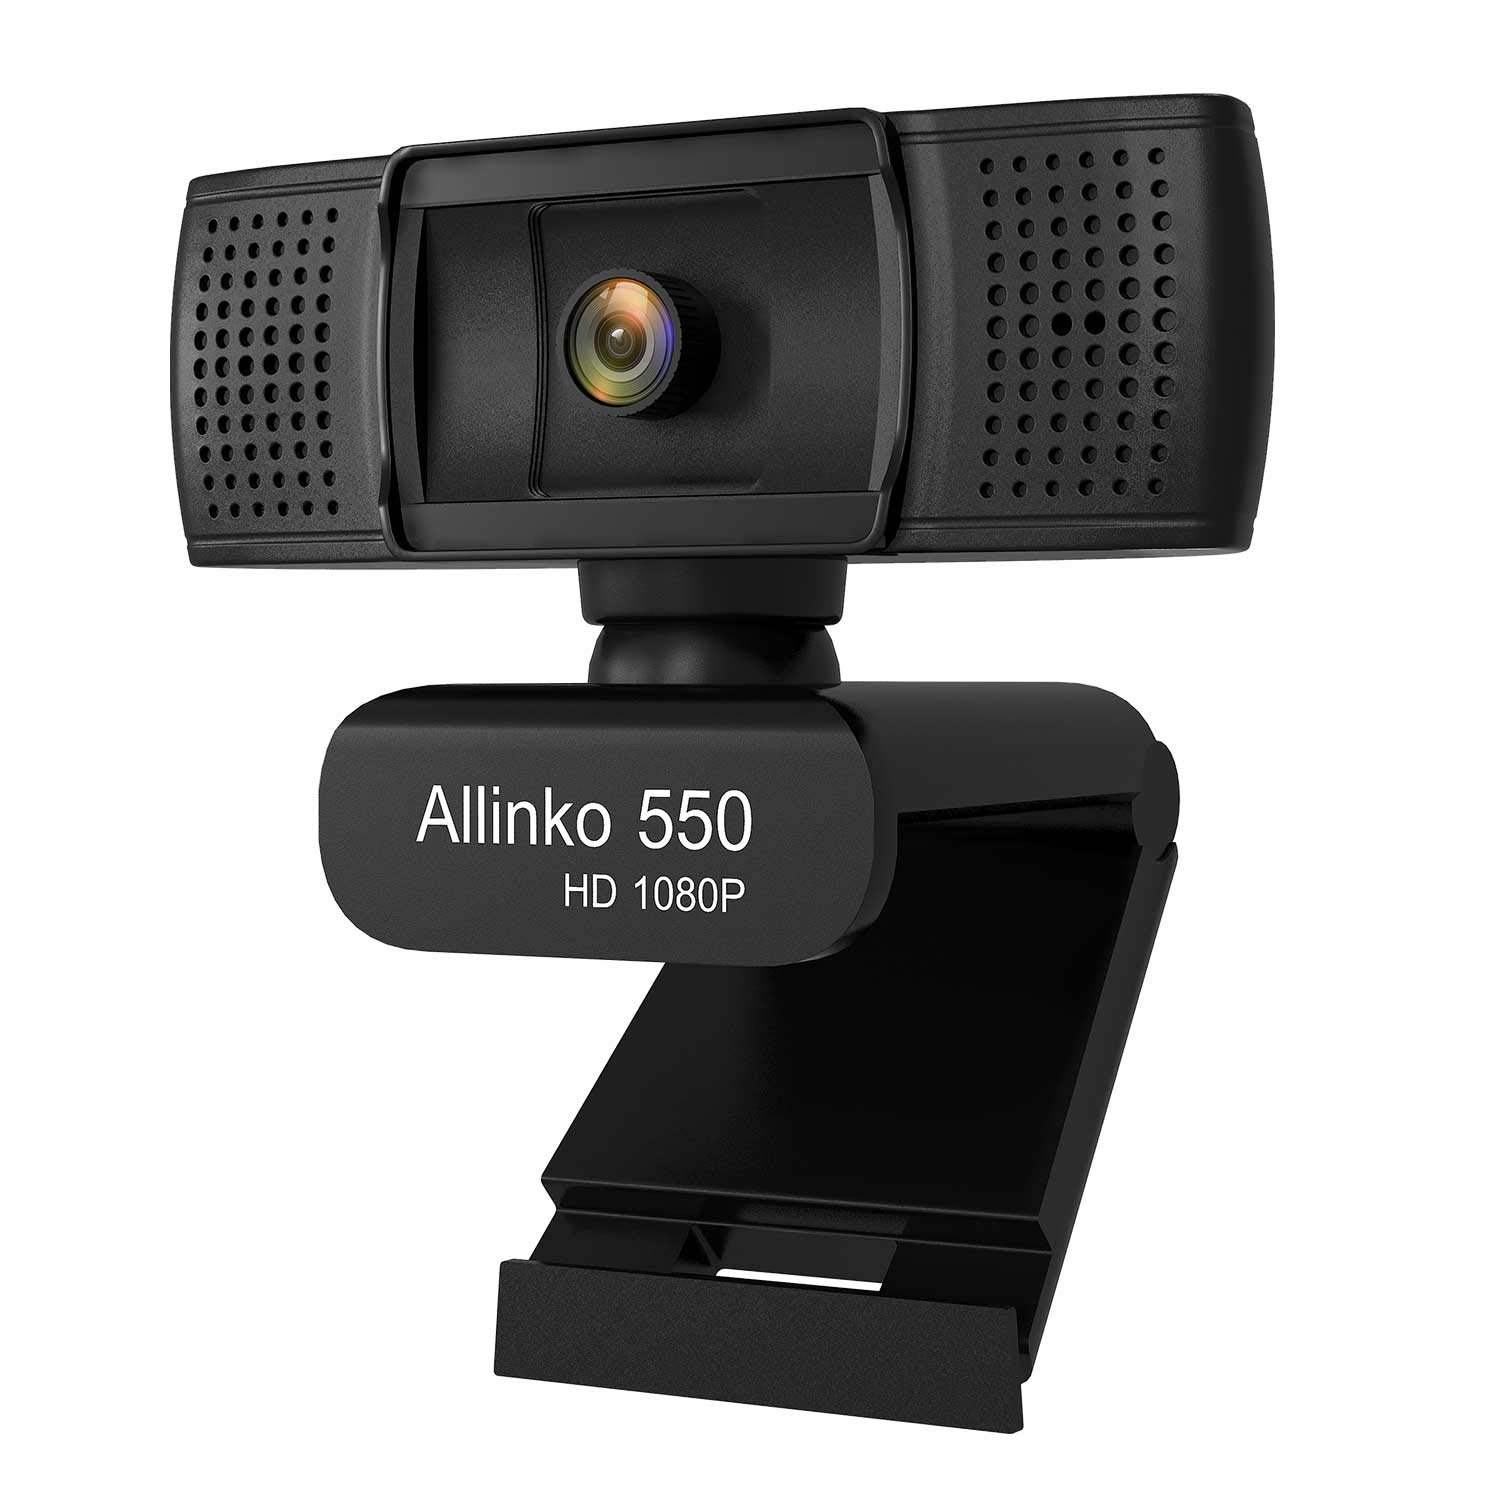 Webcam 1080P Full HD, Allinko 550 USB Web Camera with Microphone Widescreen Video Calling and Recording for Windows 10 8 7 XP Mac OS X, Wide Angle Skype Webcams for Laptop PC iMac Macbook Pro Mac Mini